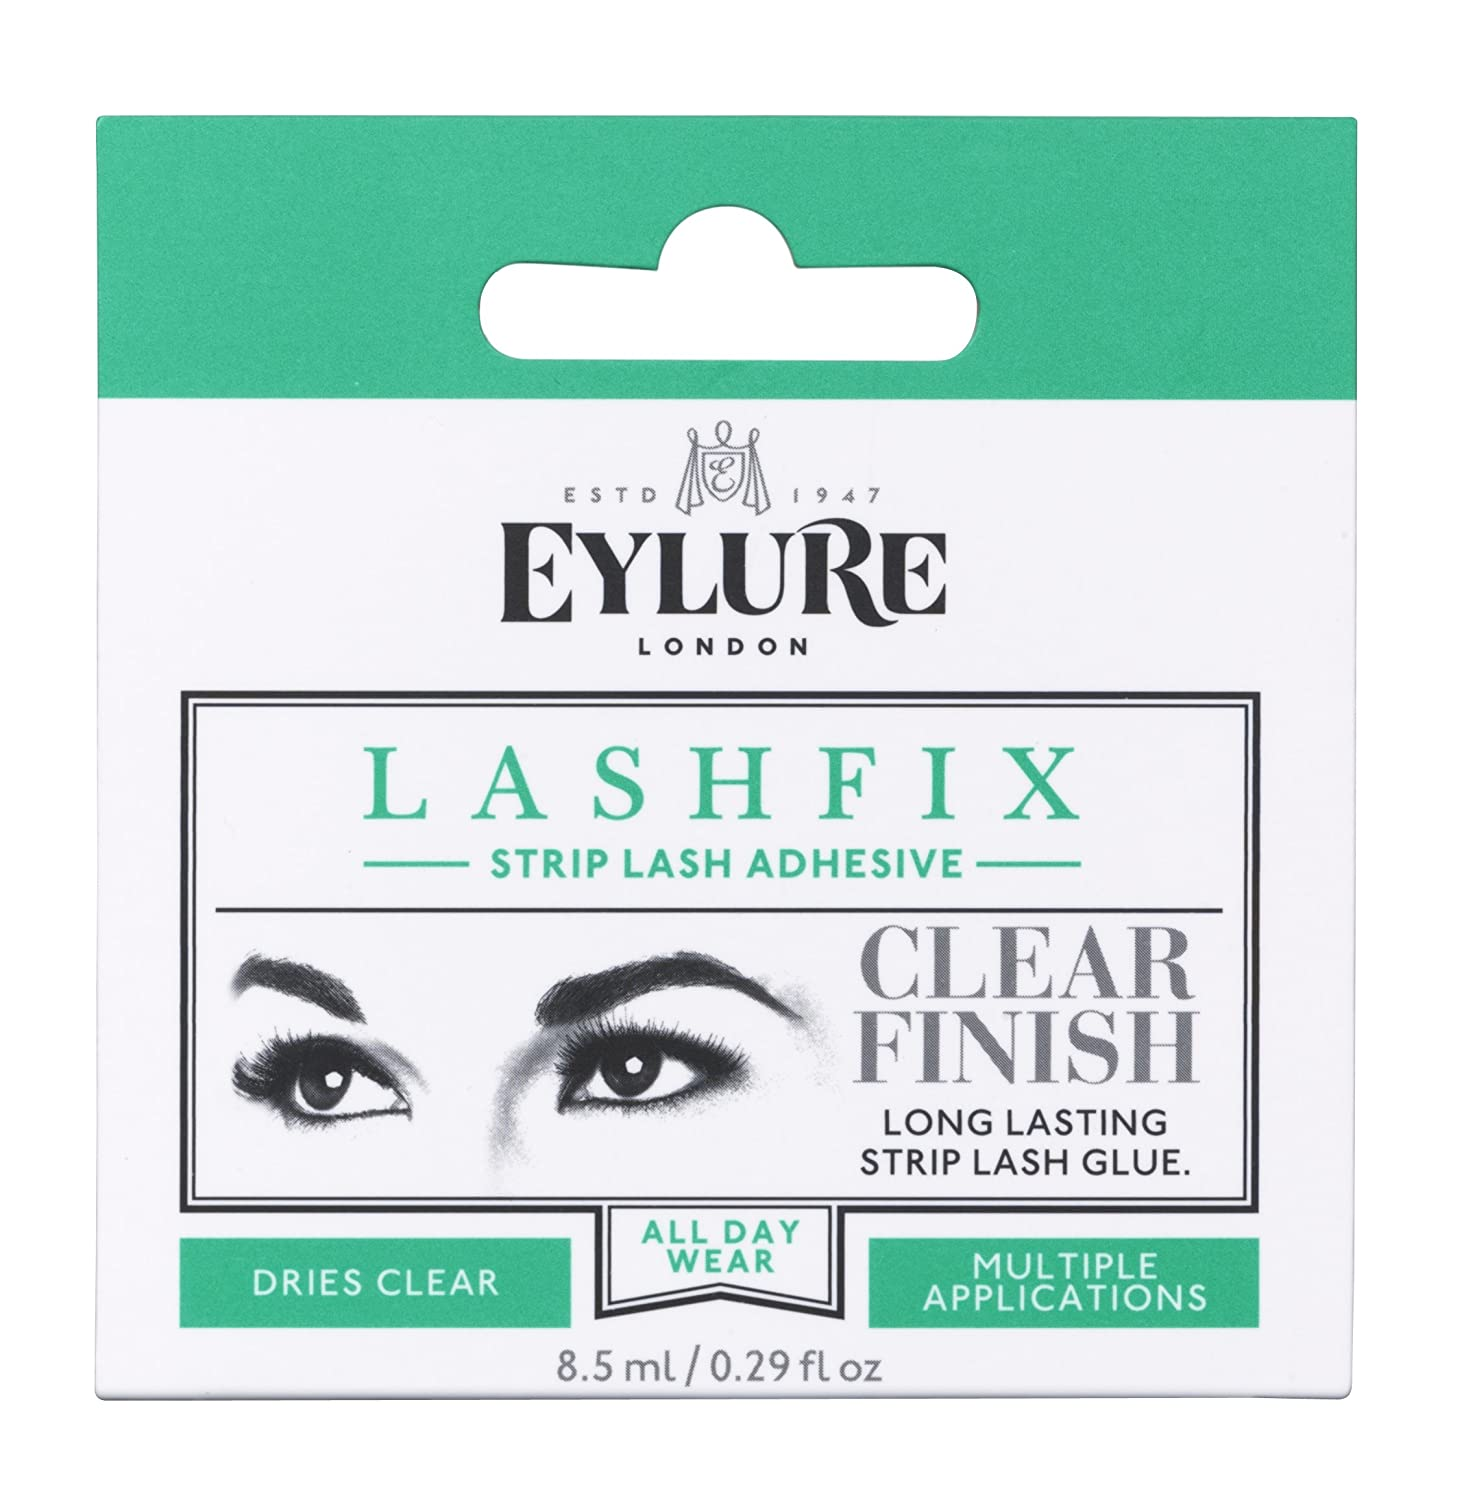 z.Eylure Lashfix Adhesive (Clear Finish)